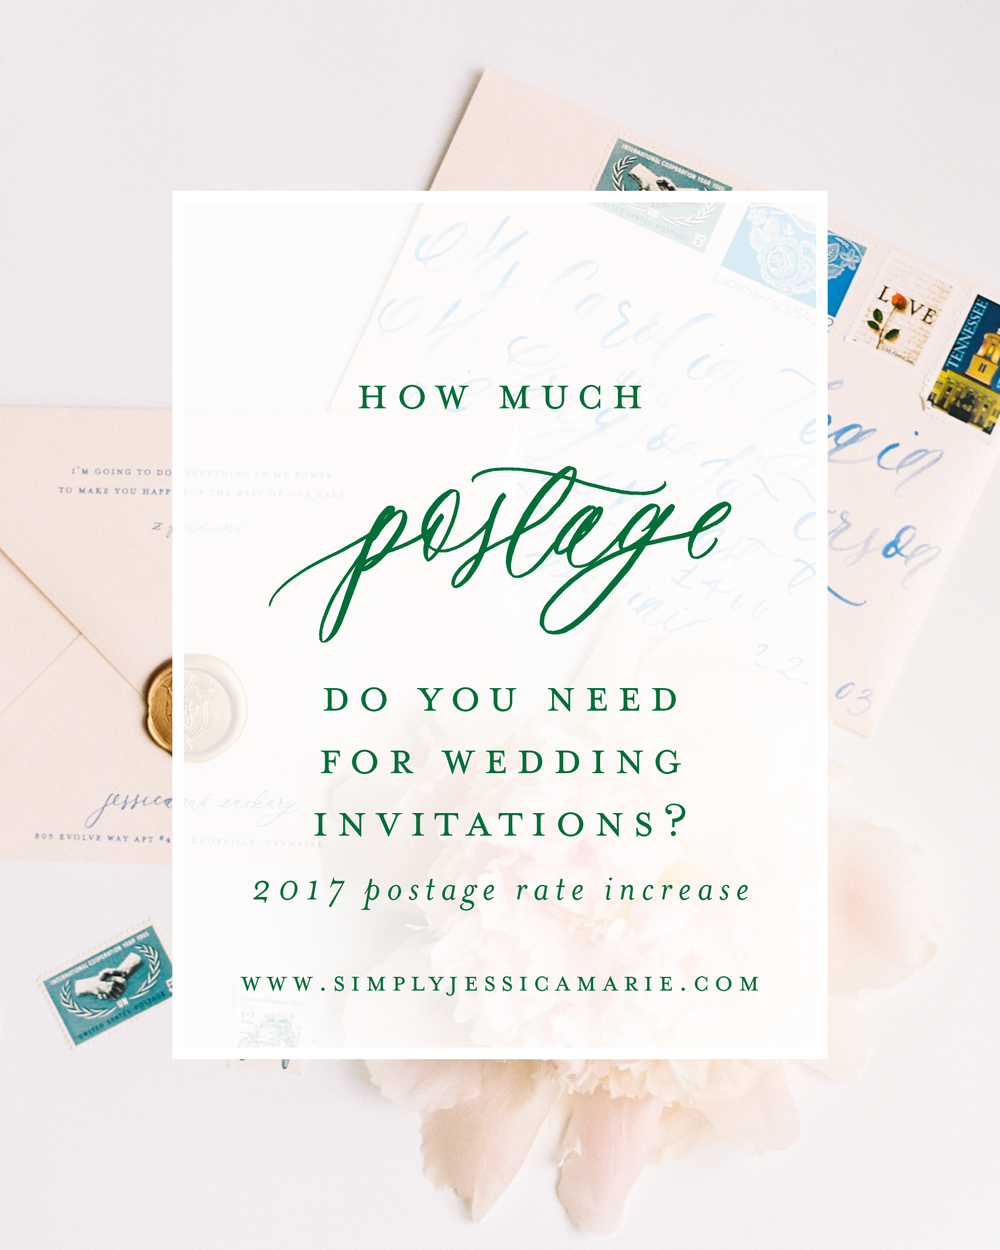 How Much Postage Do You Need for Wedding Invitations 2017 Postage